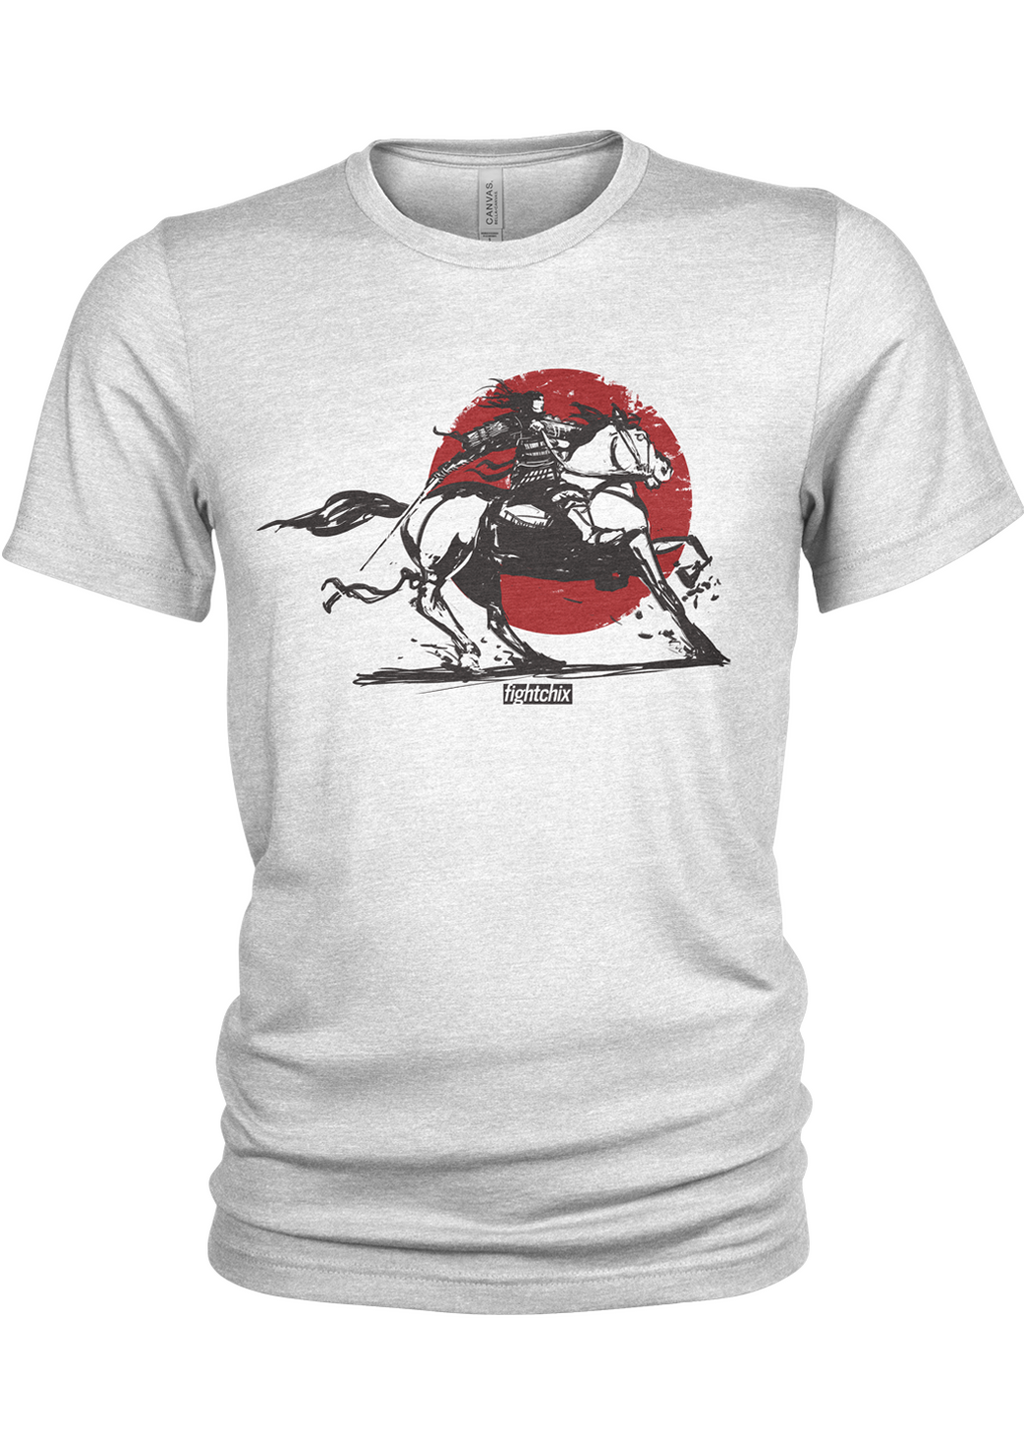 TOMOE GOZEN, HORSEBACK, men's t-shirt